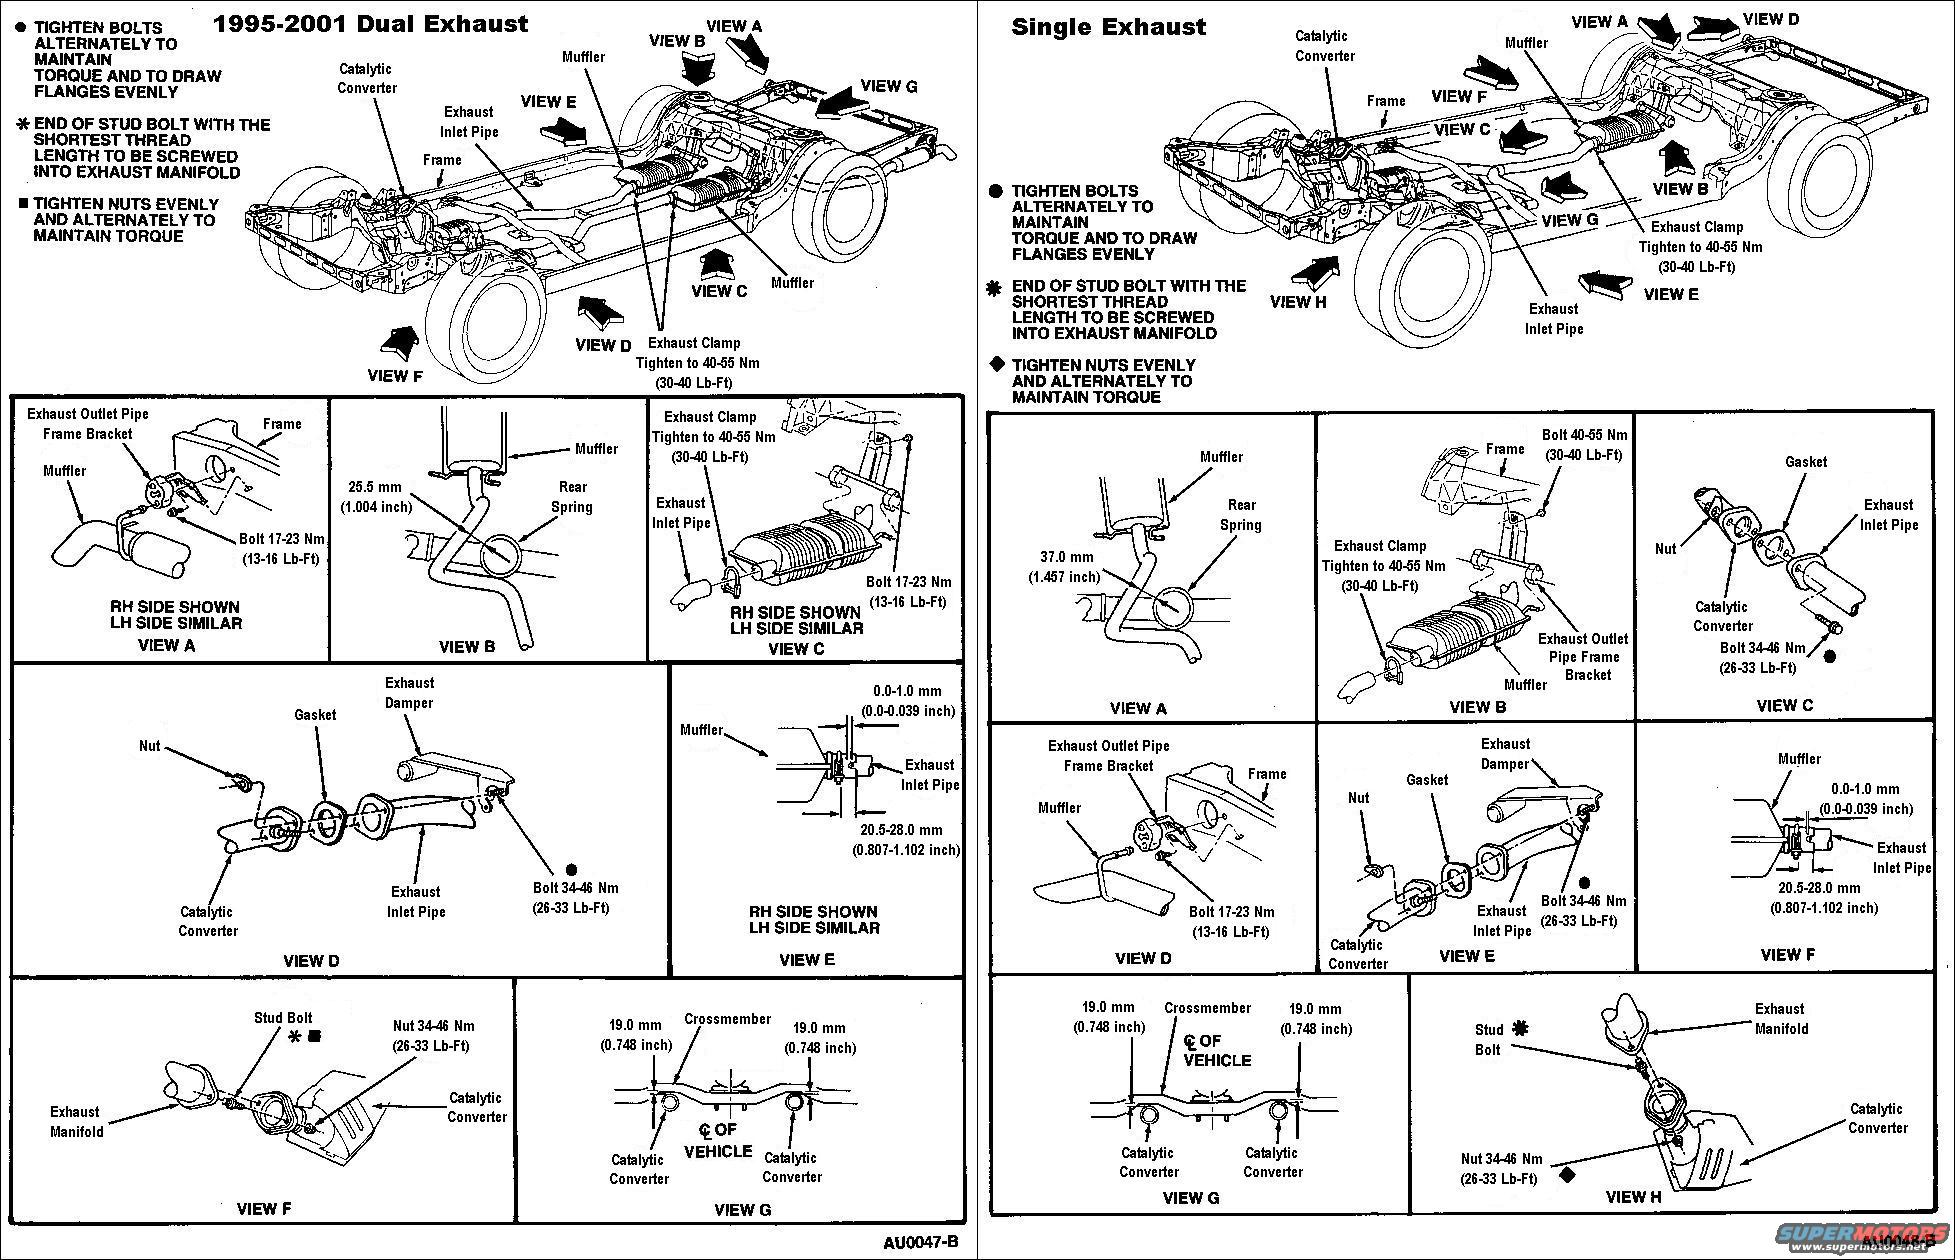 1998 Ford E350 Fuse Box Diagram Wiring Library 1995 E150 2001 Crown Victoria Engine Block And Schematic Diagrams U2022 Van